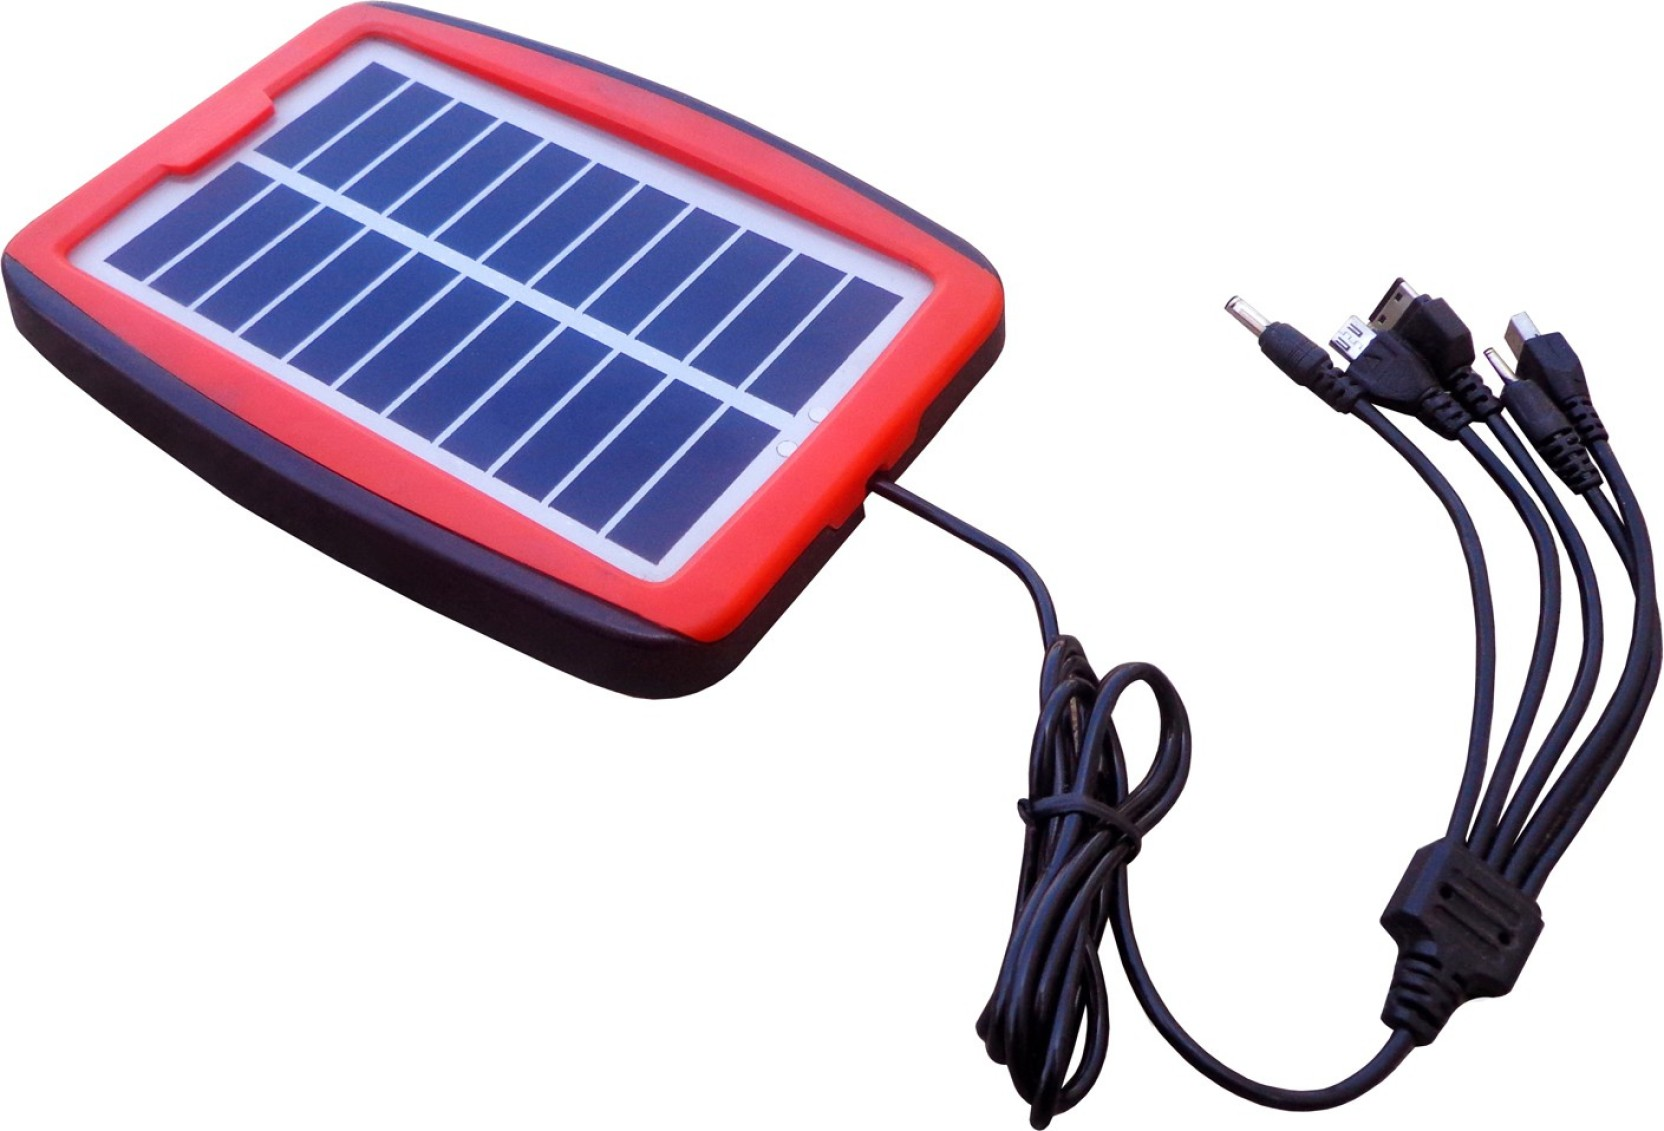 Nasa Tech Solar Panel 2 Watt 300 Ma 5 Volt For Diy Projects Price Battery Charger Based Multipurpose Circuit Share